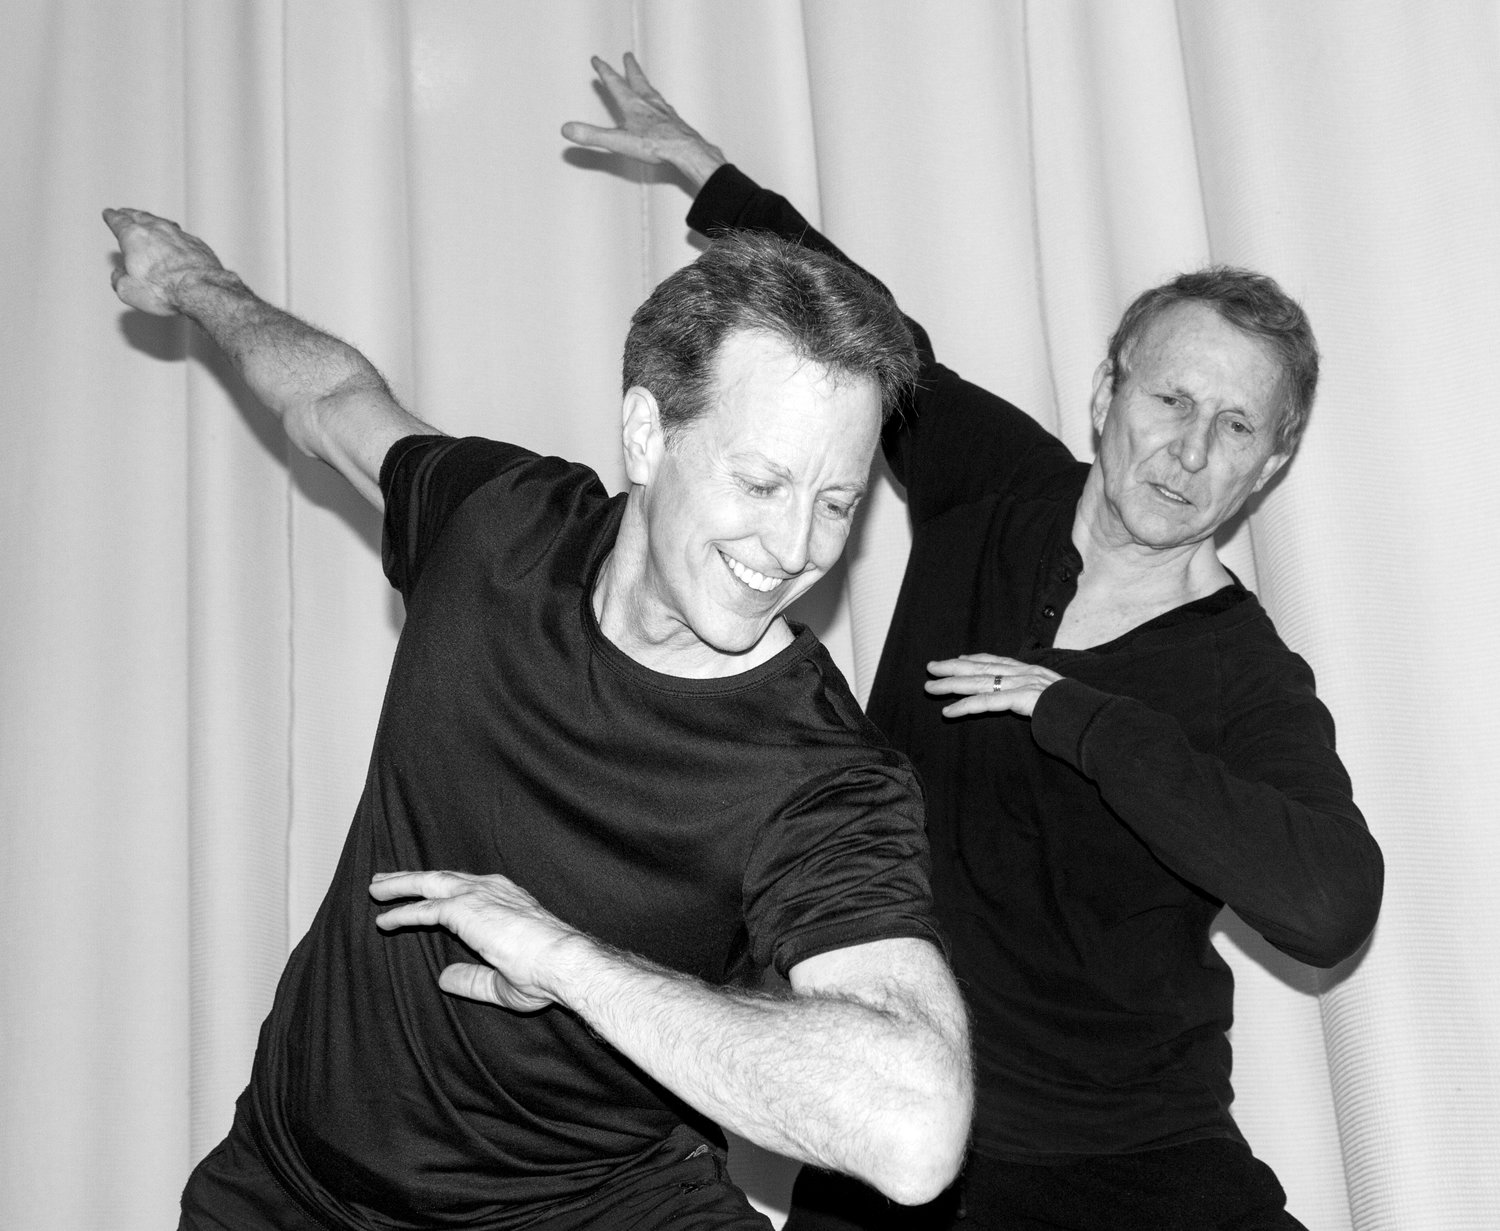 Don Halquist, left, has been dancing with, and learning from, Bill Evans for the past 33 years. During that time, the two have developed an undeniable chemistry on stage together.